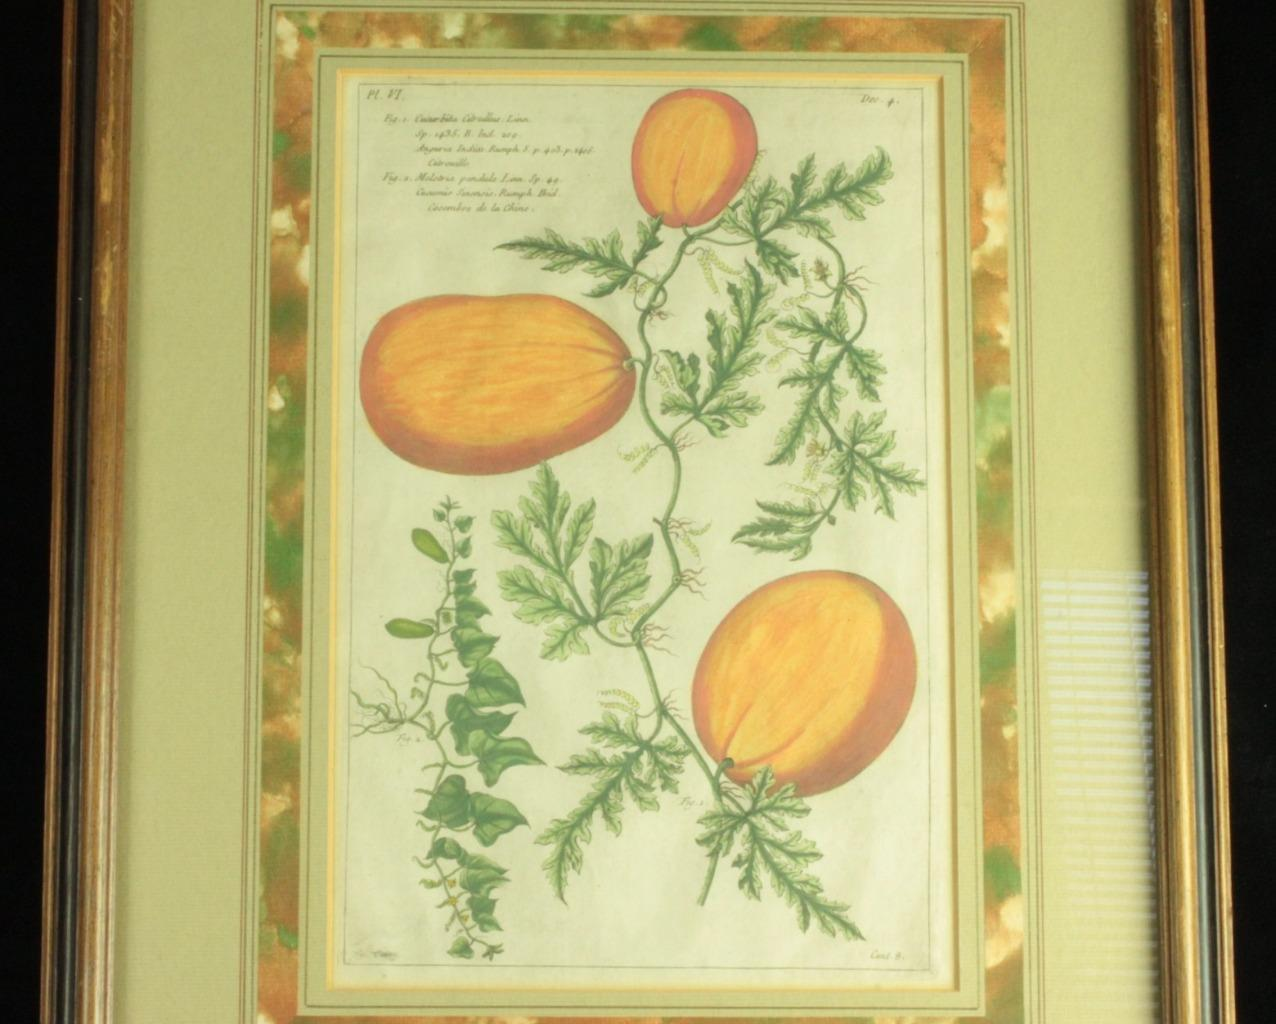 c1890 Framed Chromolith Litho Print Watermelon/Fruit/Botanical Specimen